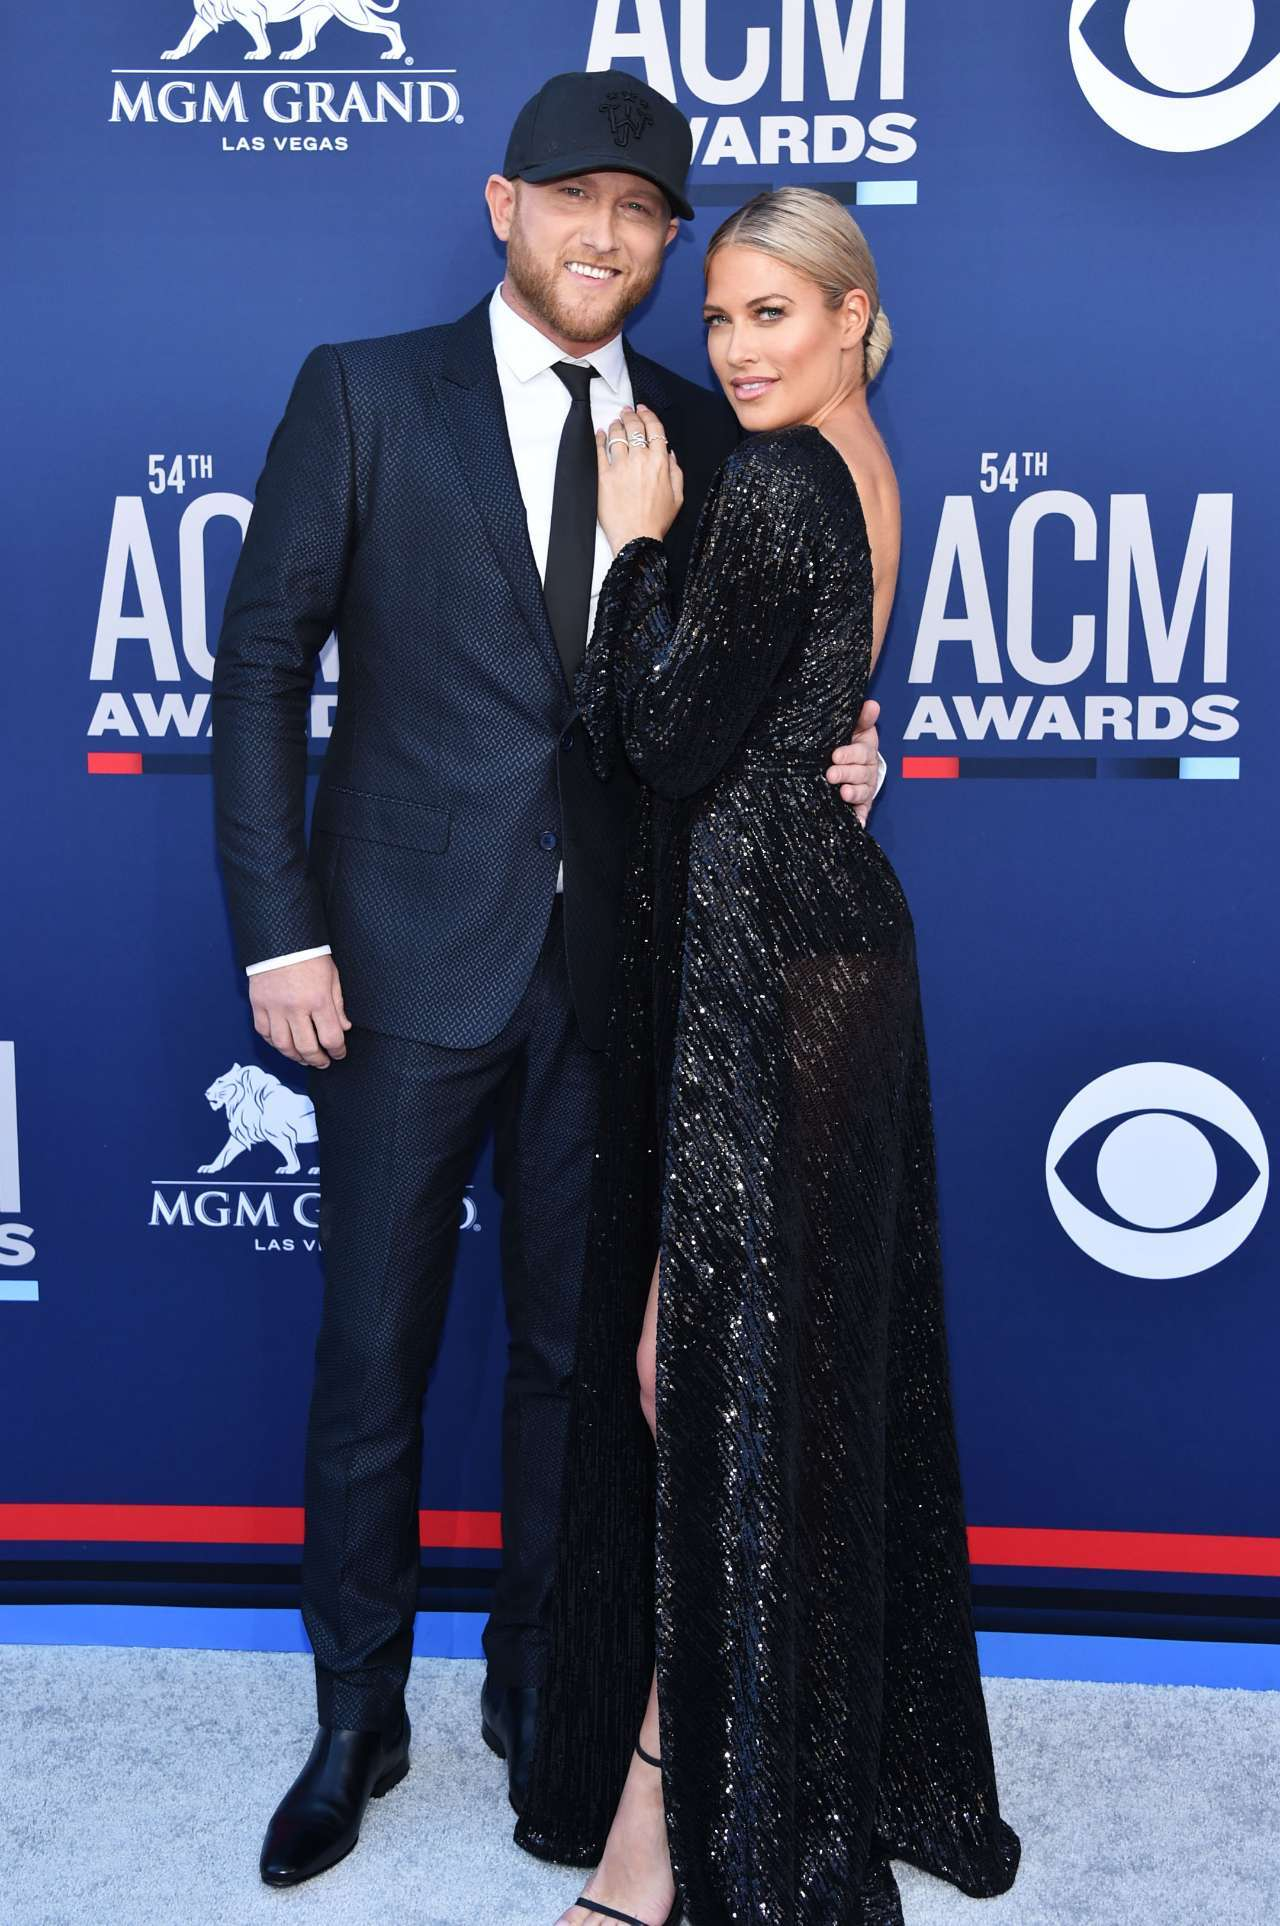 Acm Awards Cole Swindell And Girlfriend Barbie Blank Make